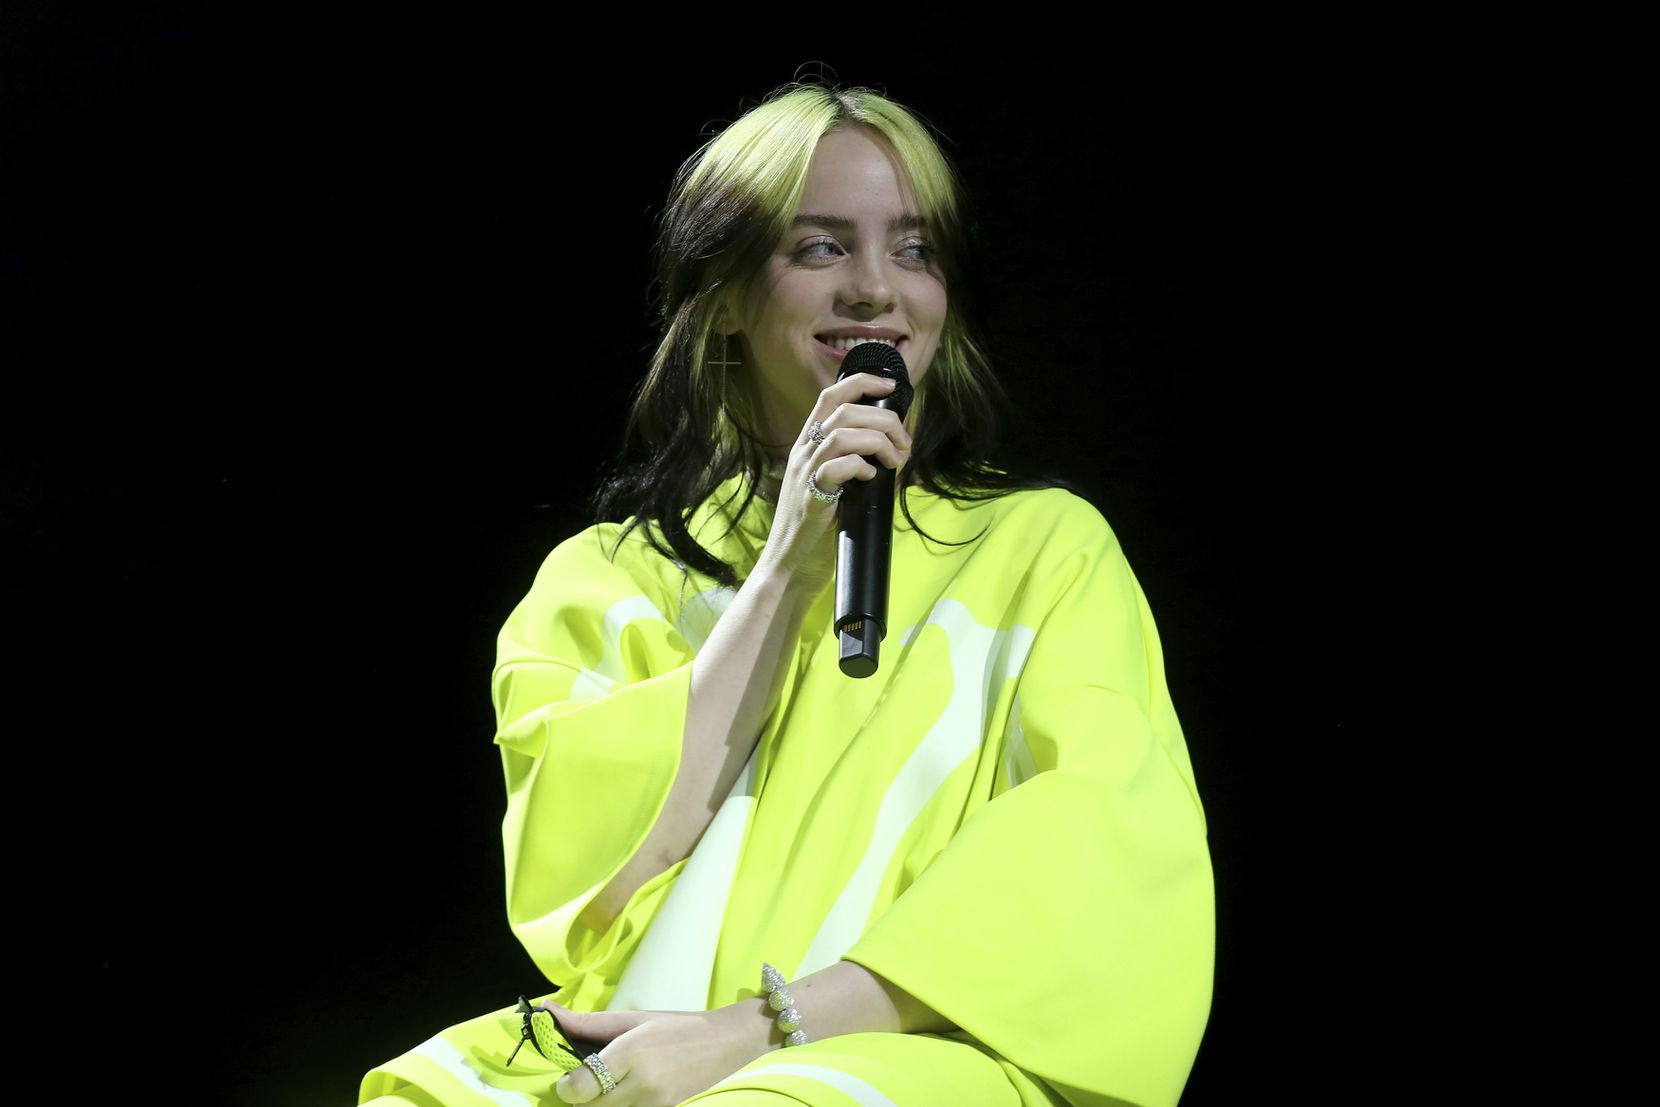 Billie Eilish, 18, could become the youngest-ever Album of the Year winner.